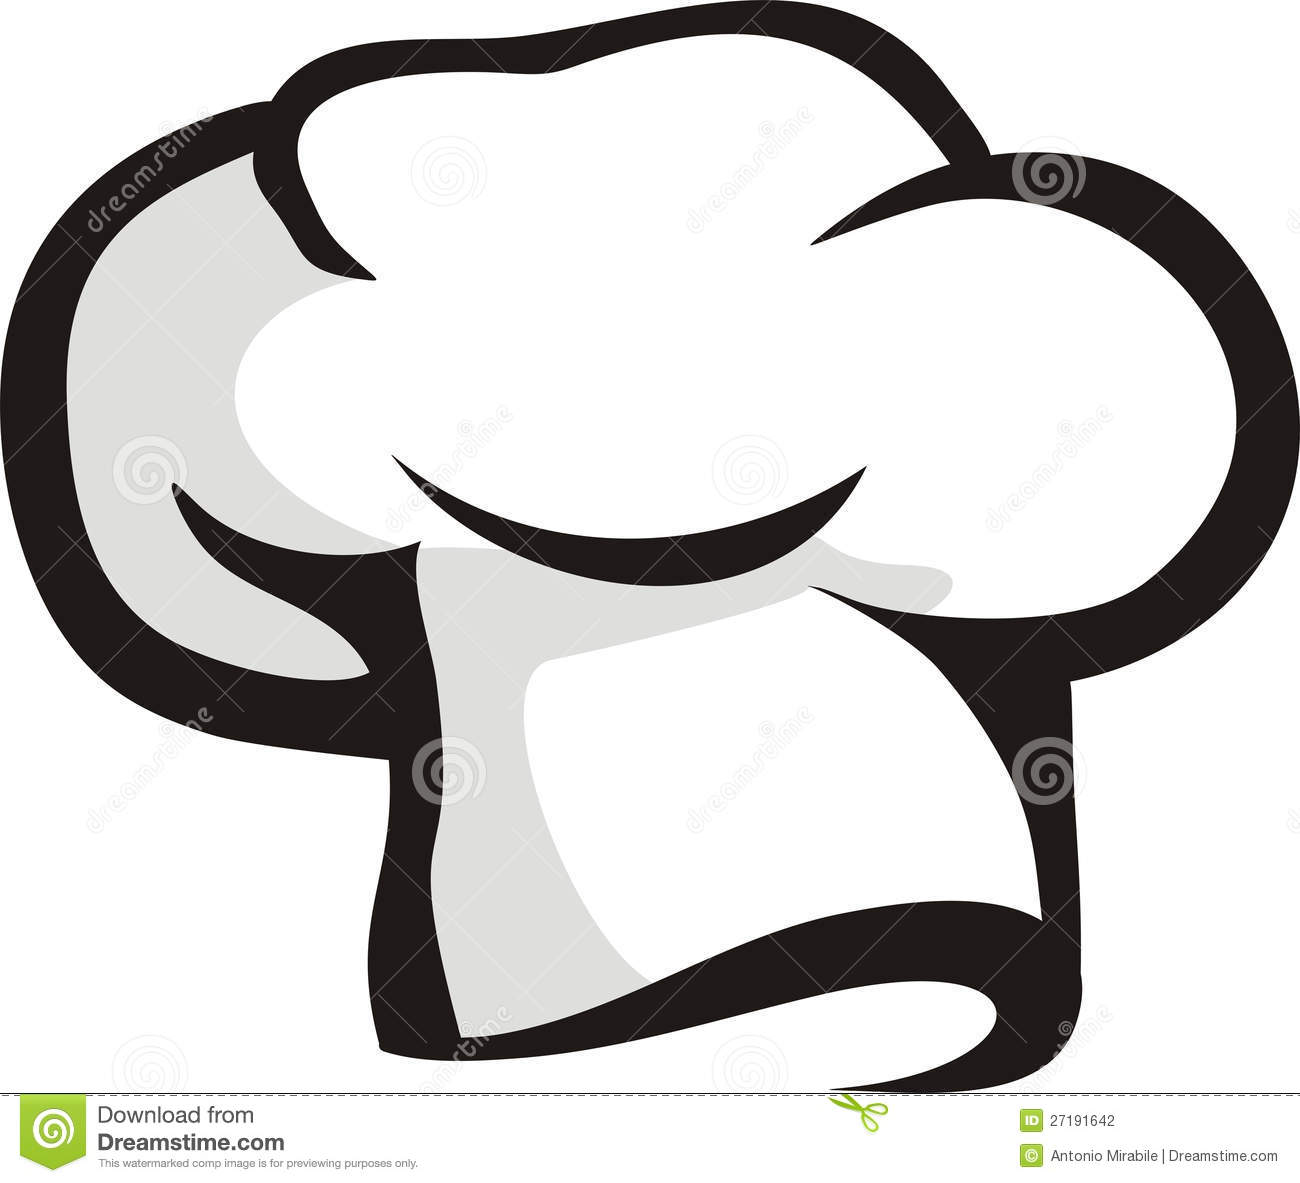 cooking hat clipart - photo #37